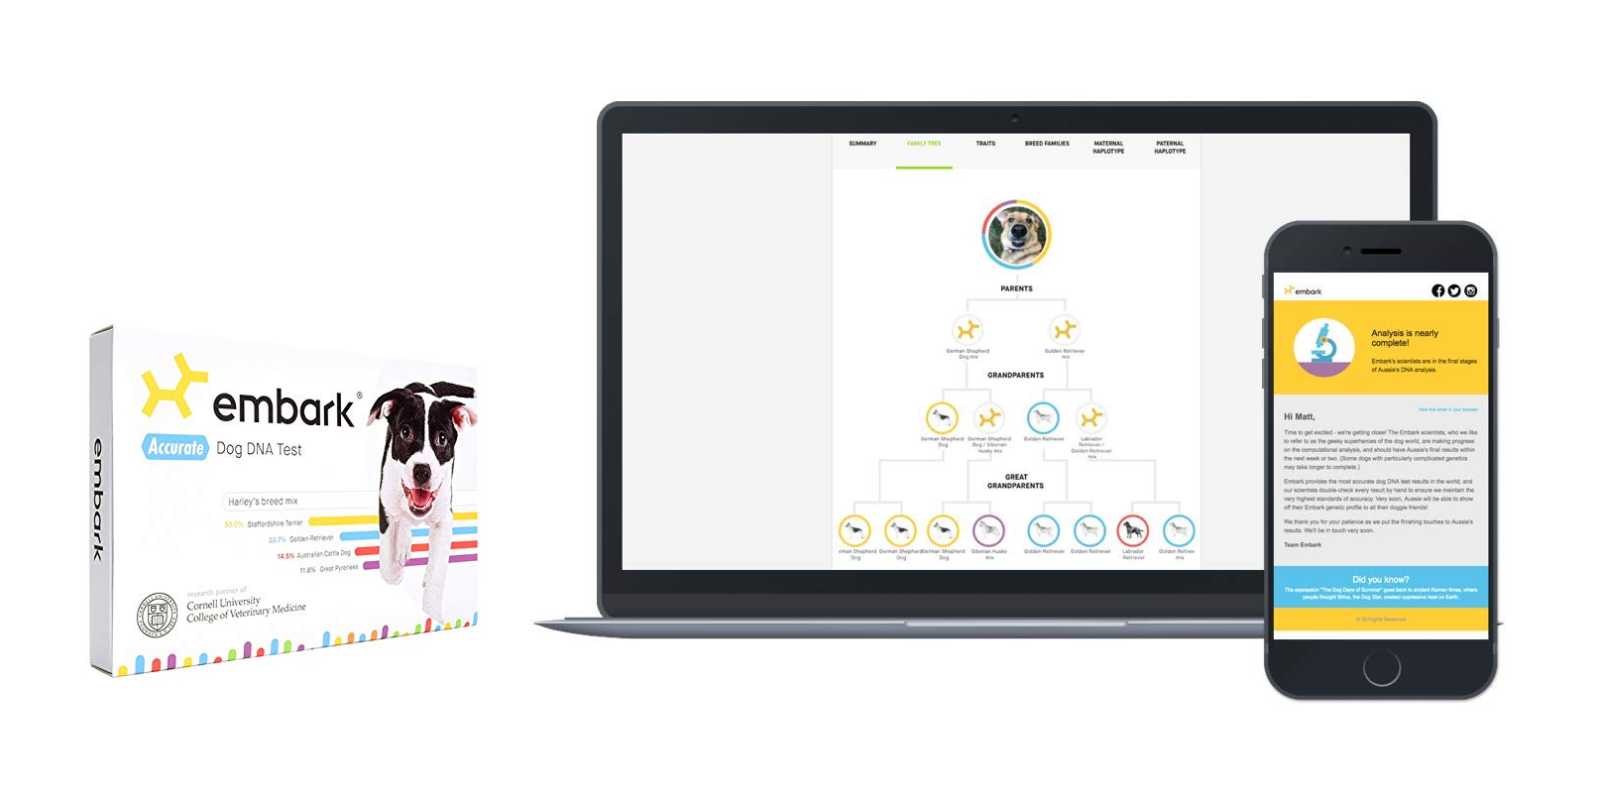 Learn all about your dog thanks to the Embark DNA Test Kit for $129 (Reg. $189, today only)